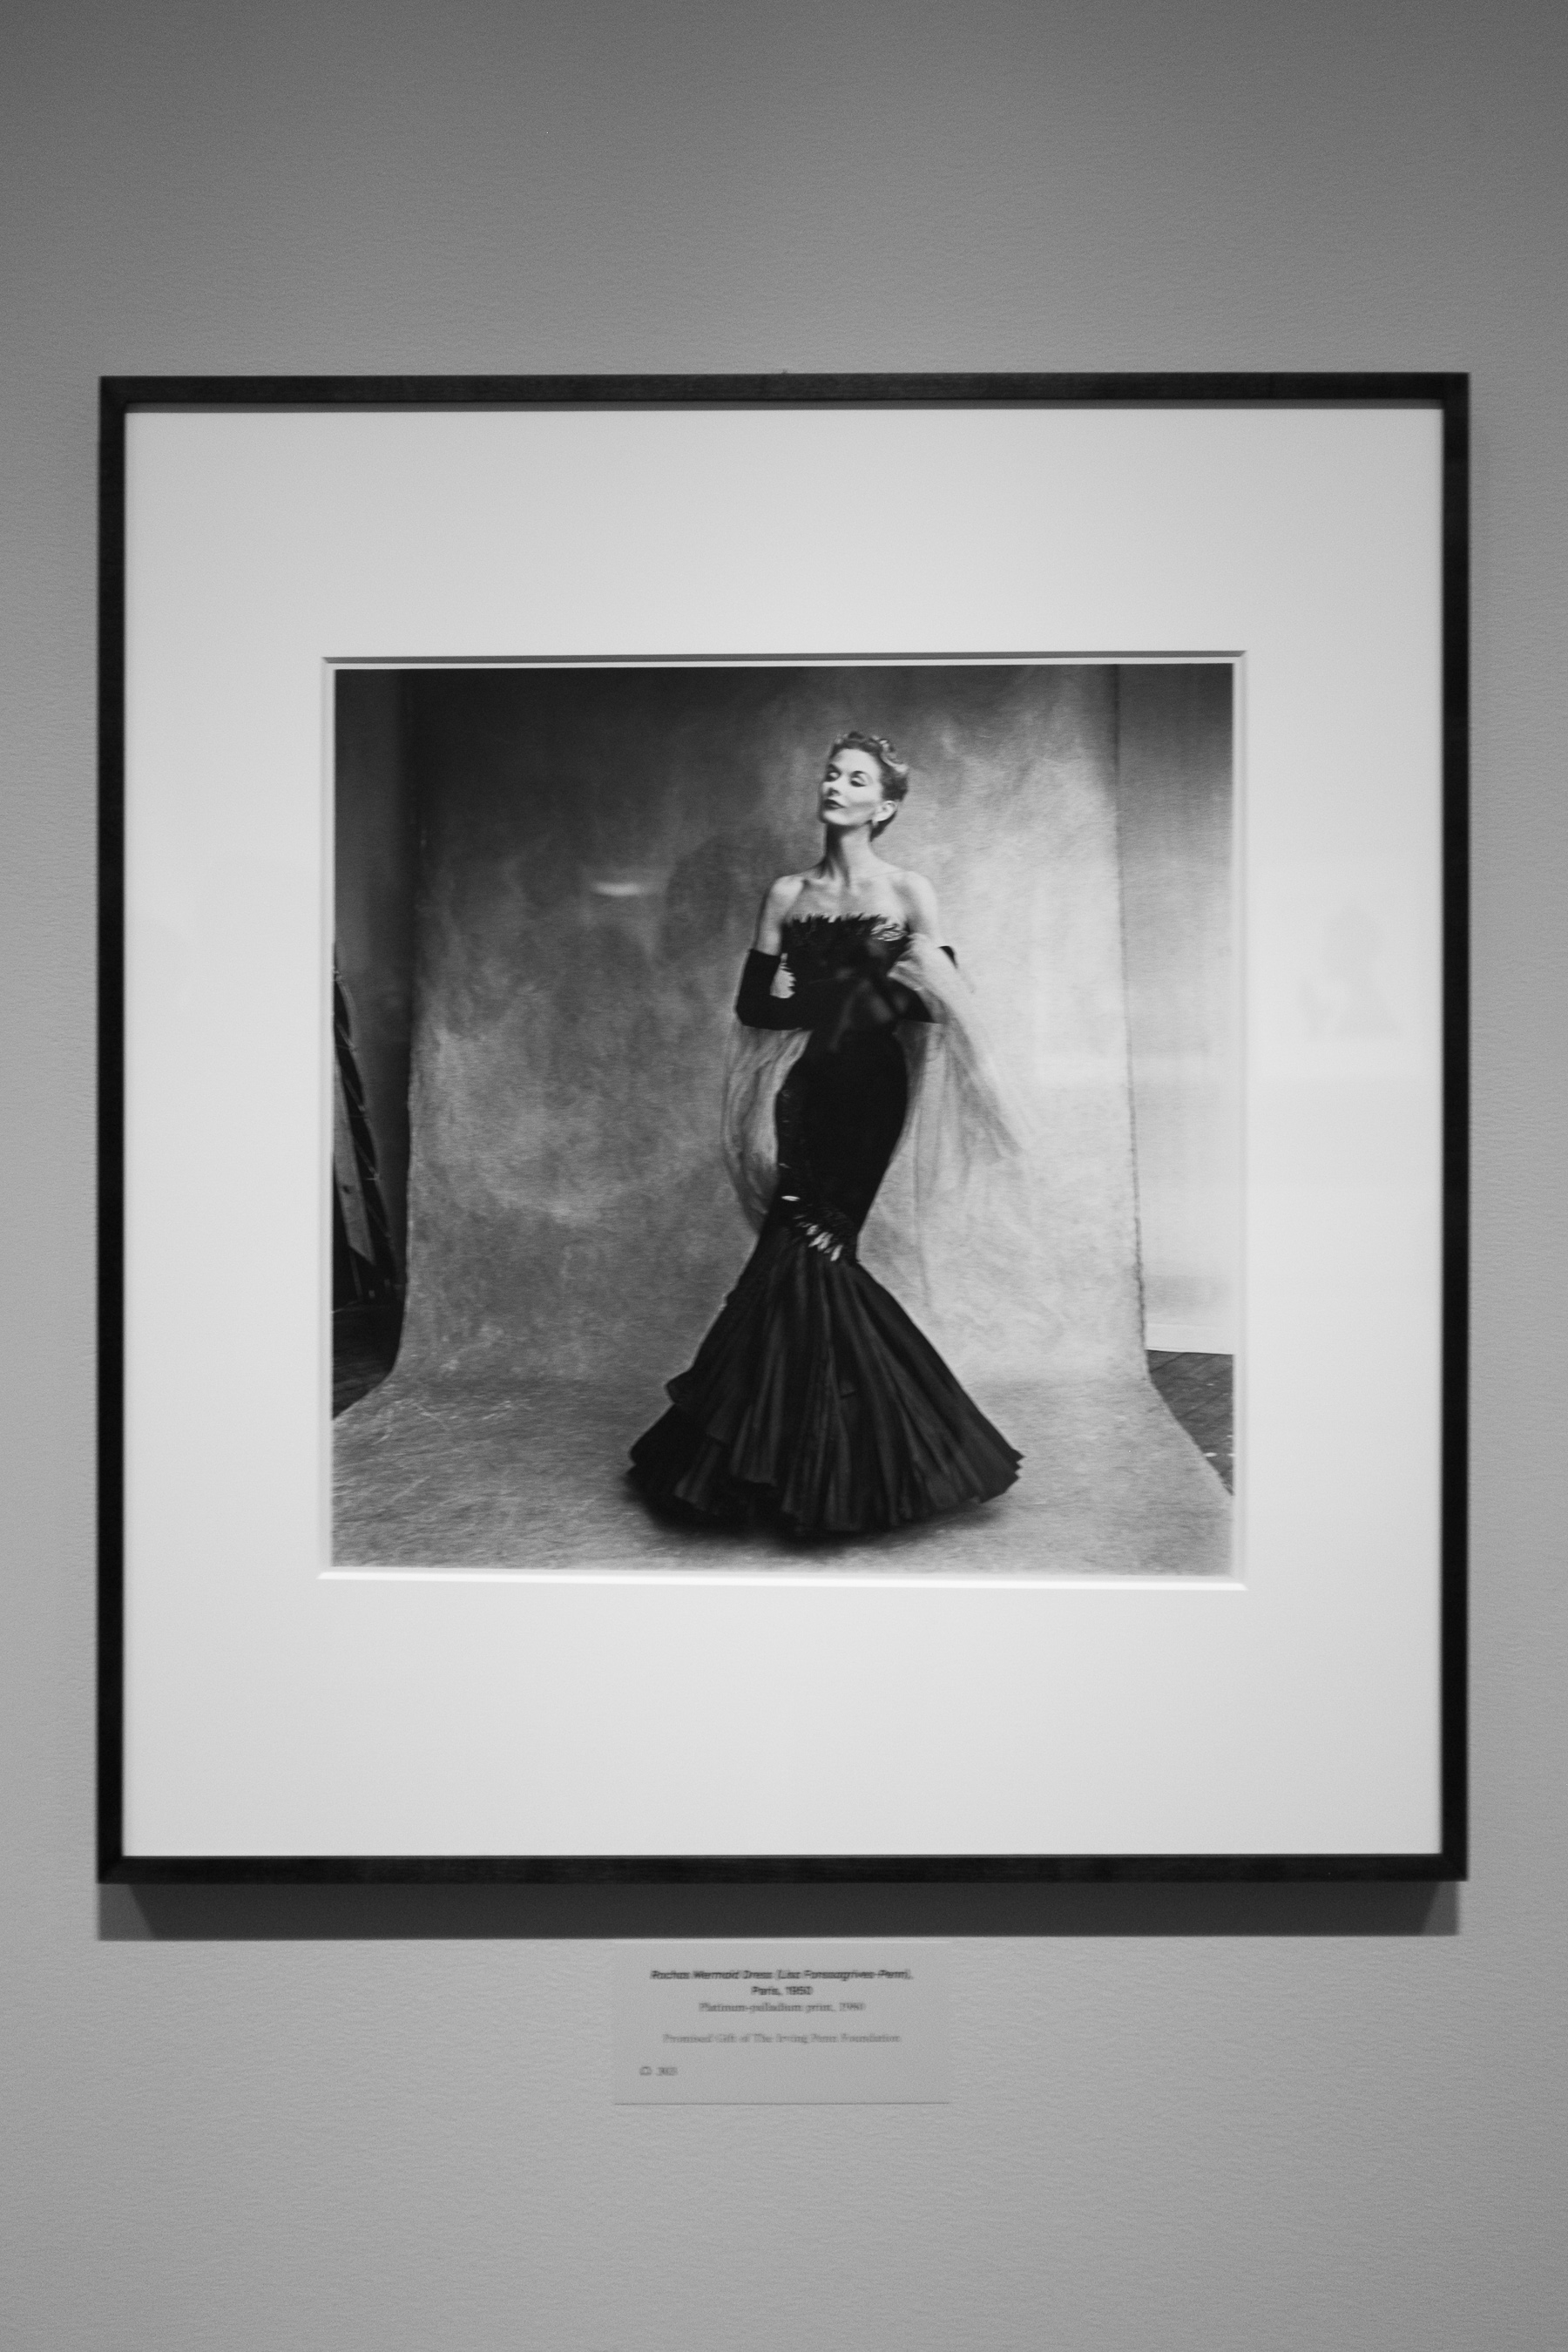 One of the most prolific fashion models of the day and Irving Penn's wife Lisa Fonssagrives-Penn, photographed against the very backdrop on display at the exhibit.